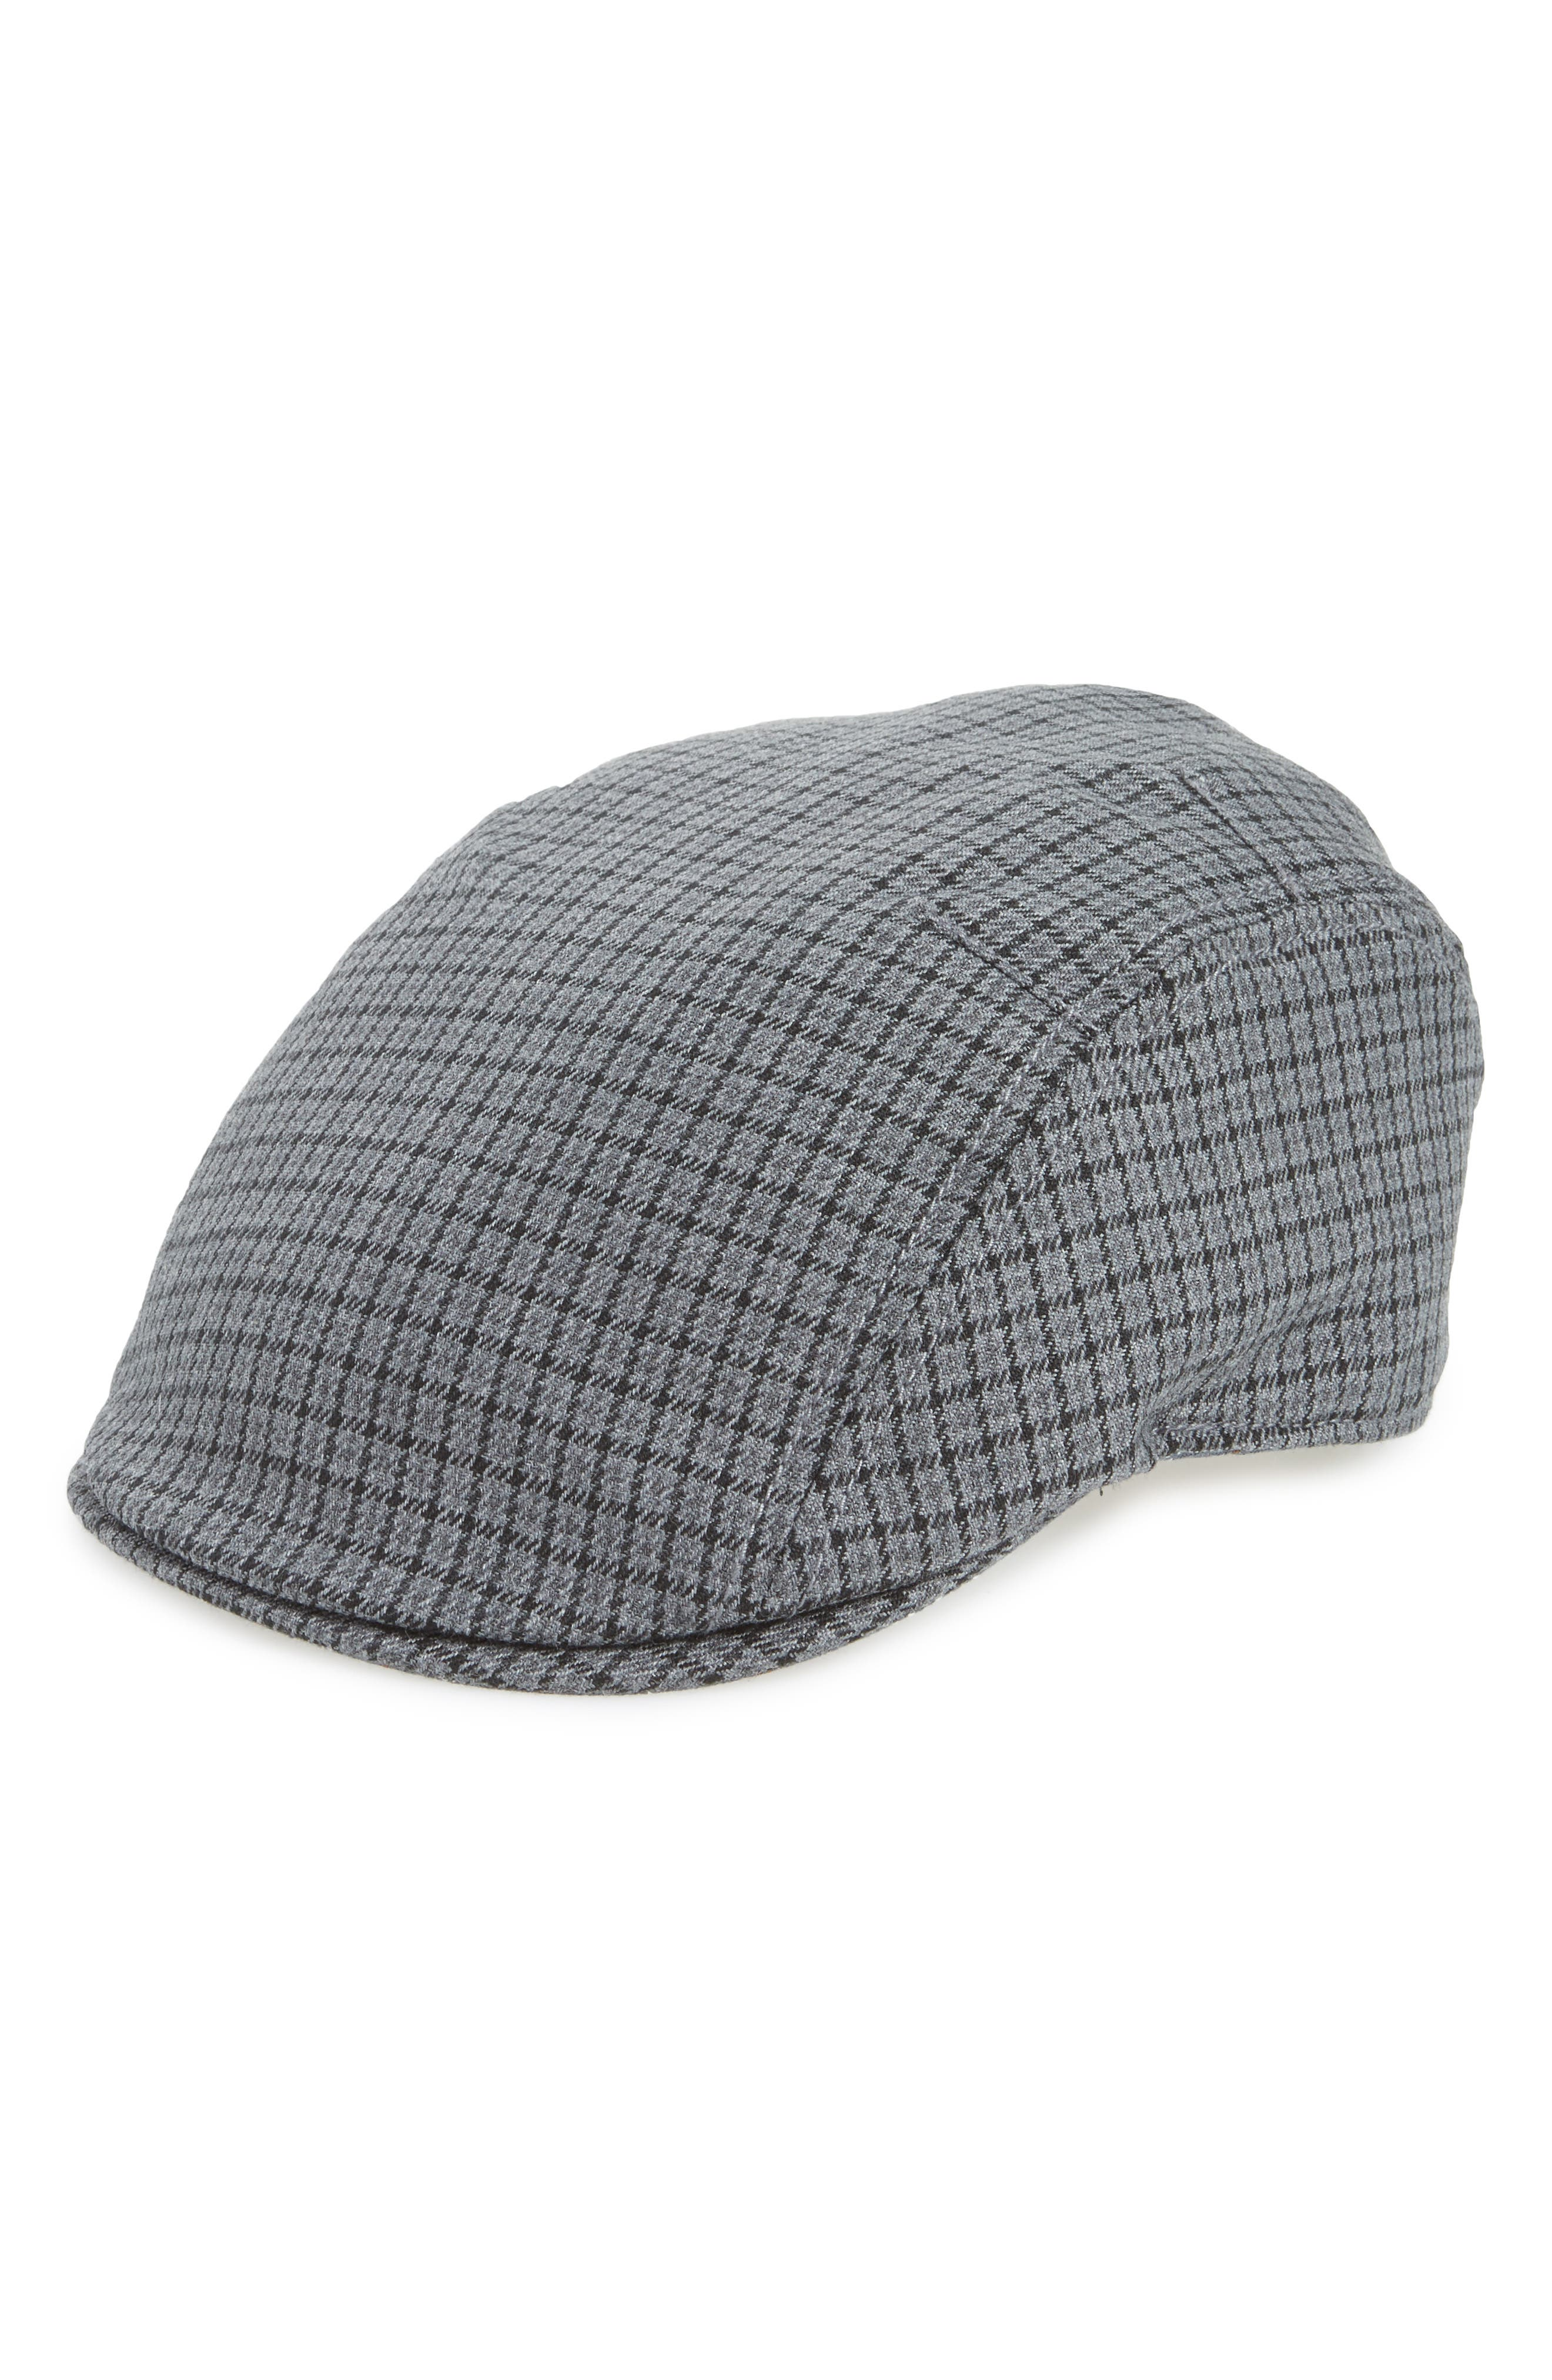 Oscar Plaid Driving Cap,                         Main,                         color, 020